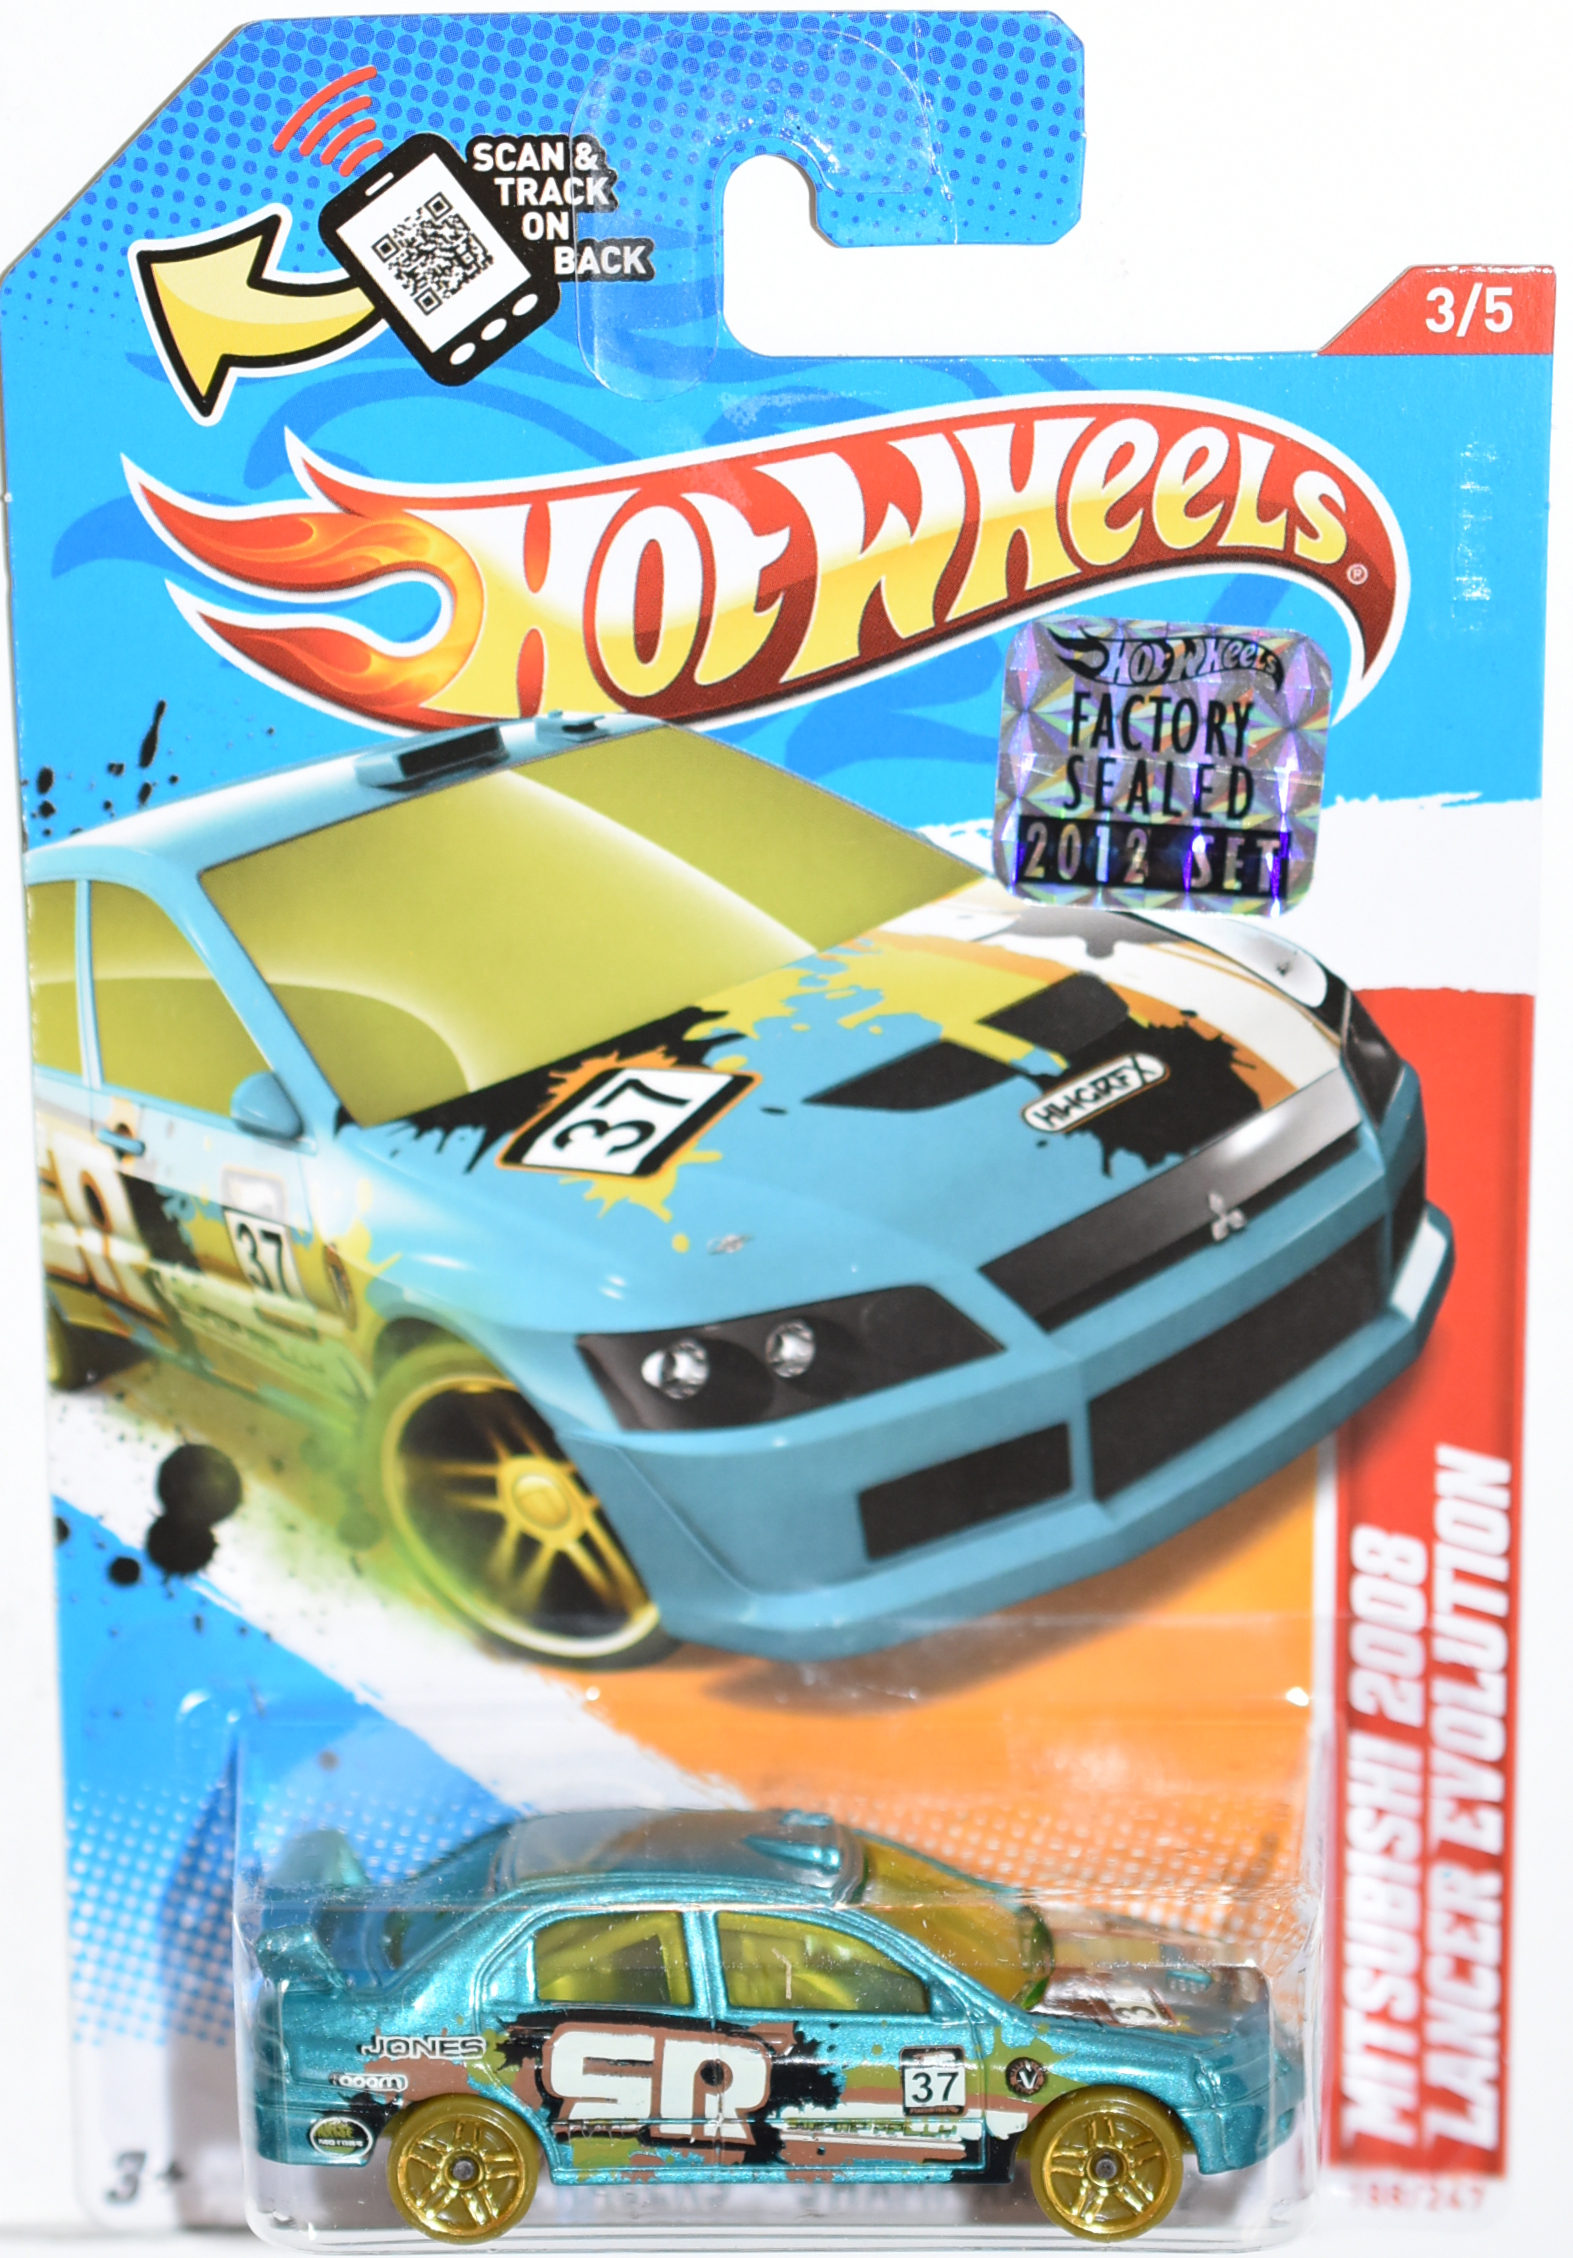 HOT WHEELS 2012 MITSUBISHI 2008 LANCER EVOLUTION BLUE FACTORY SEALED